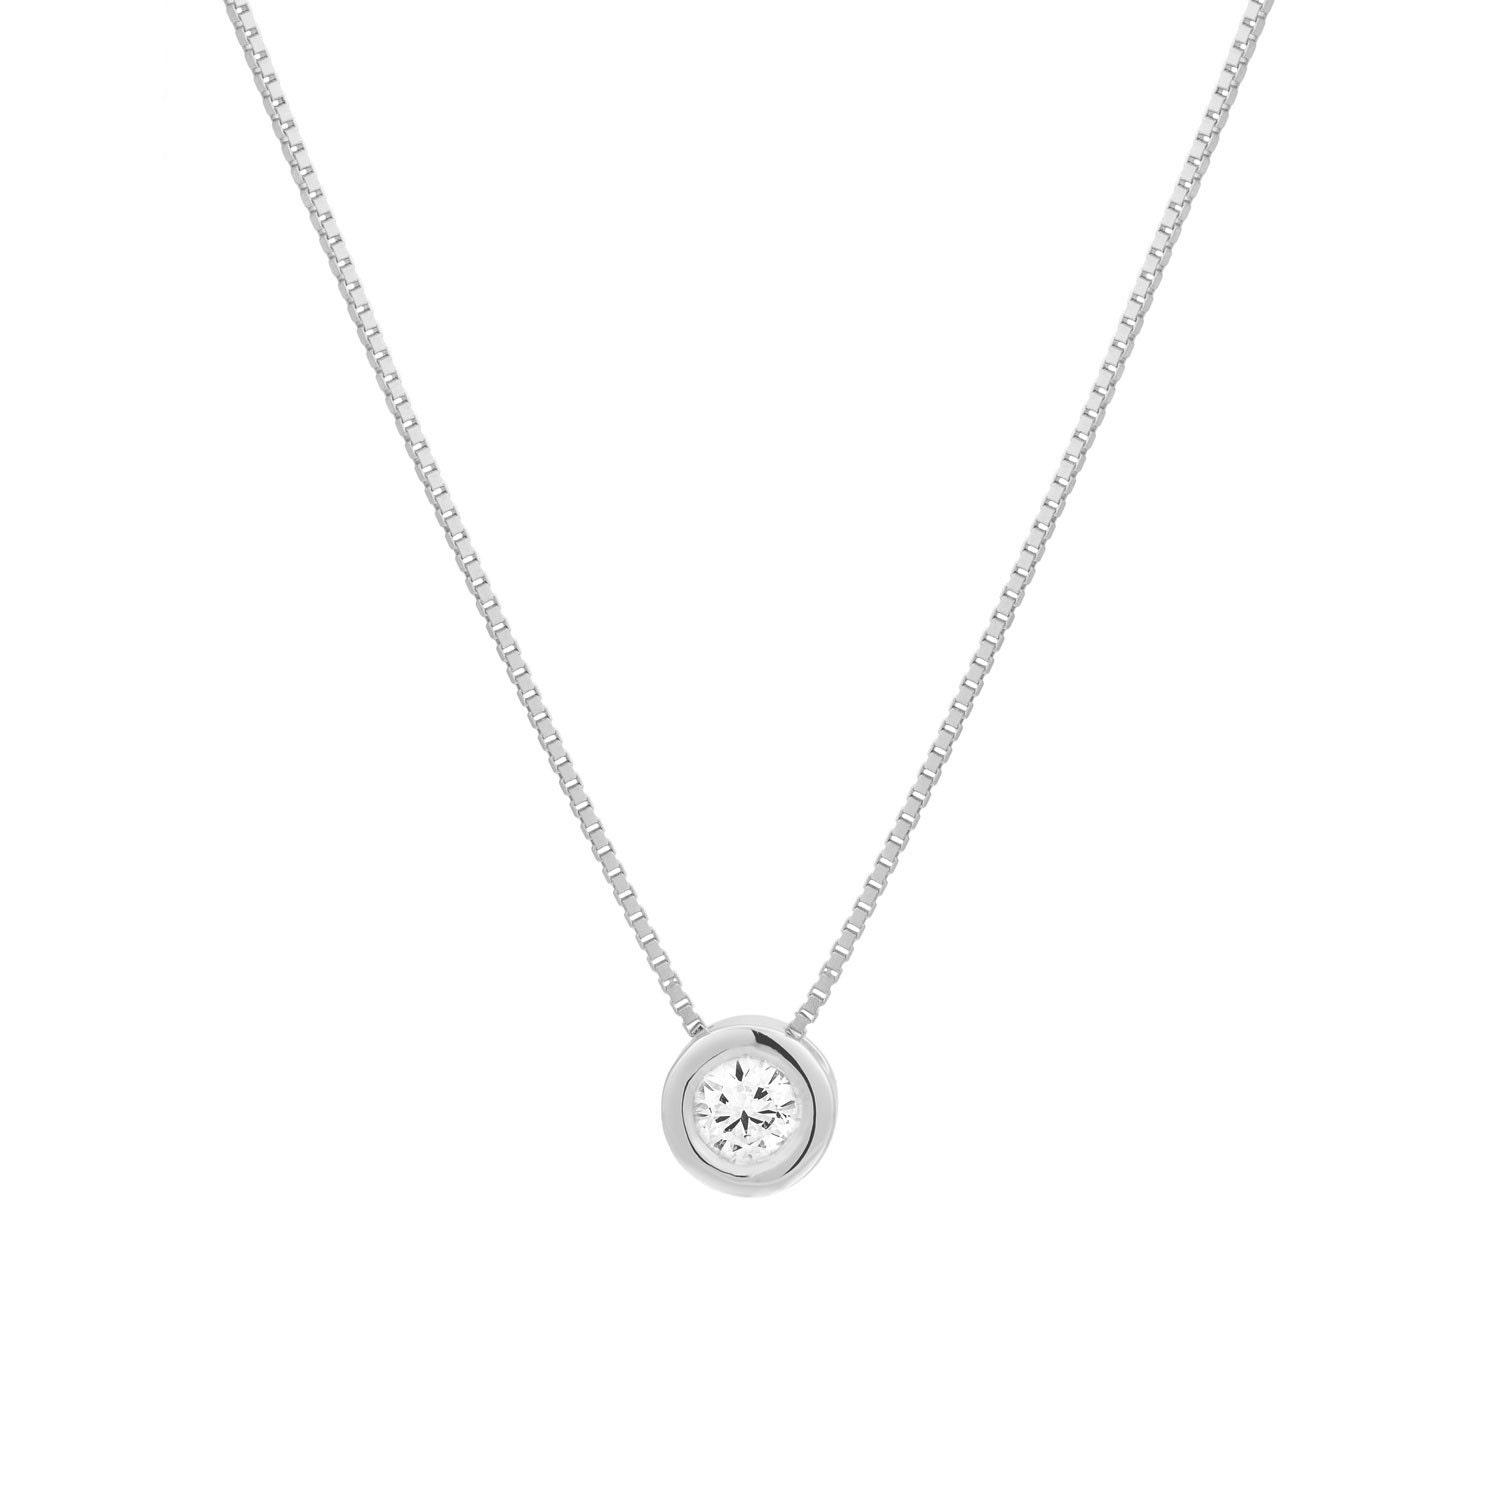 solitaire diamond necklace round diamond necklace dainty. Black Bedroom Furniture Sets. Home Design Ideas